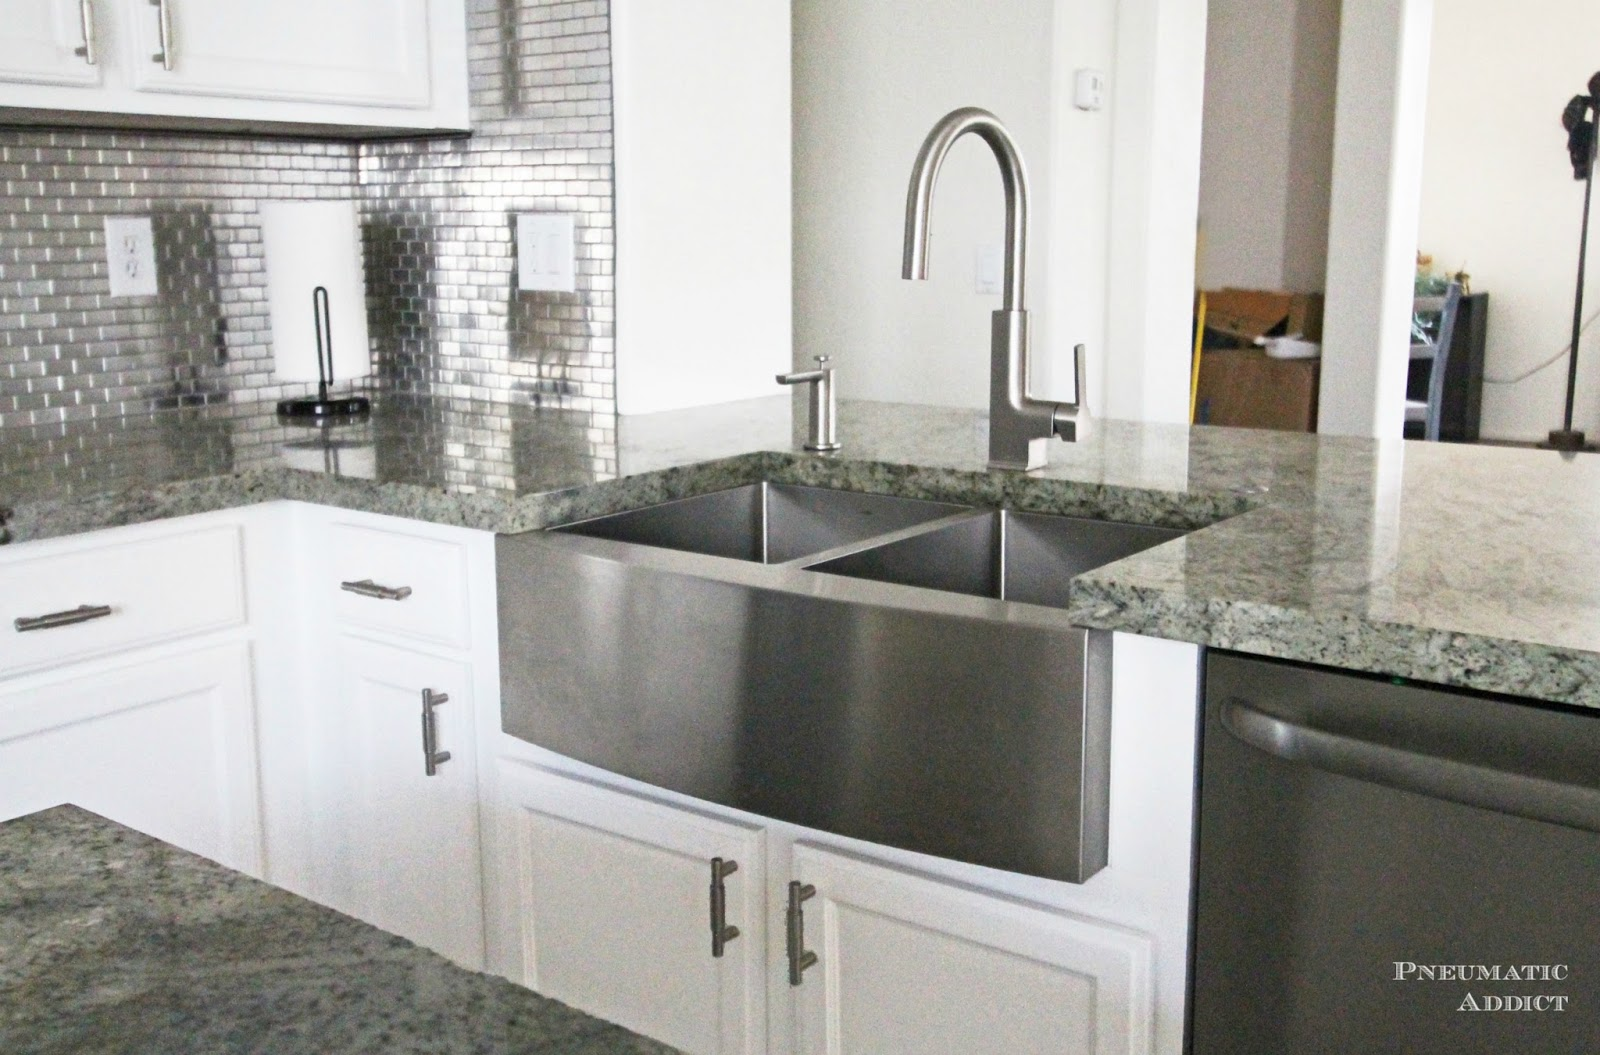 Farm House Kitchen Sink Home Depot Tiles How To Install An Apron In A Stock Cabinet